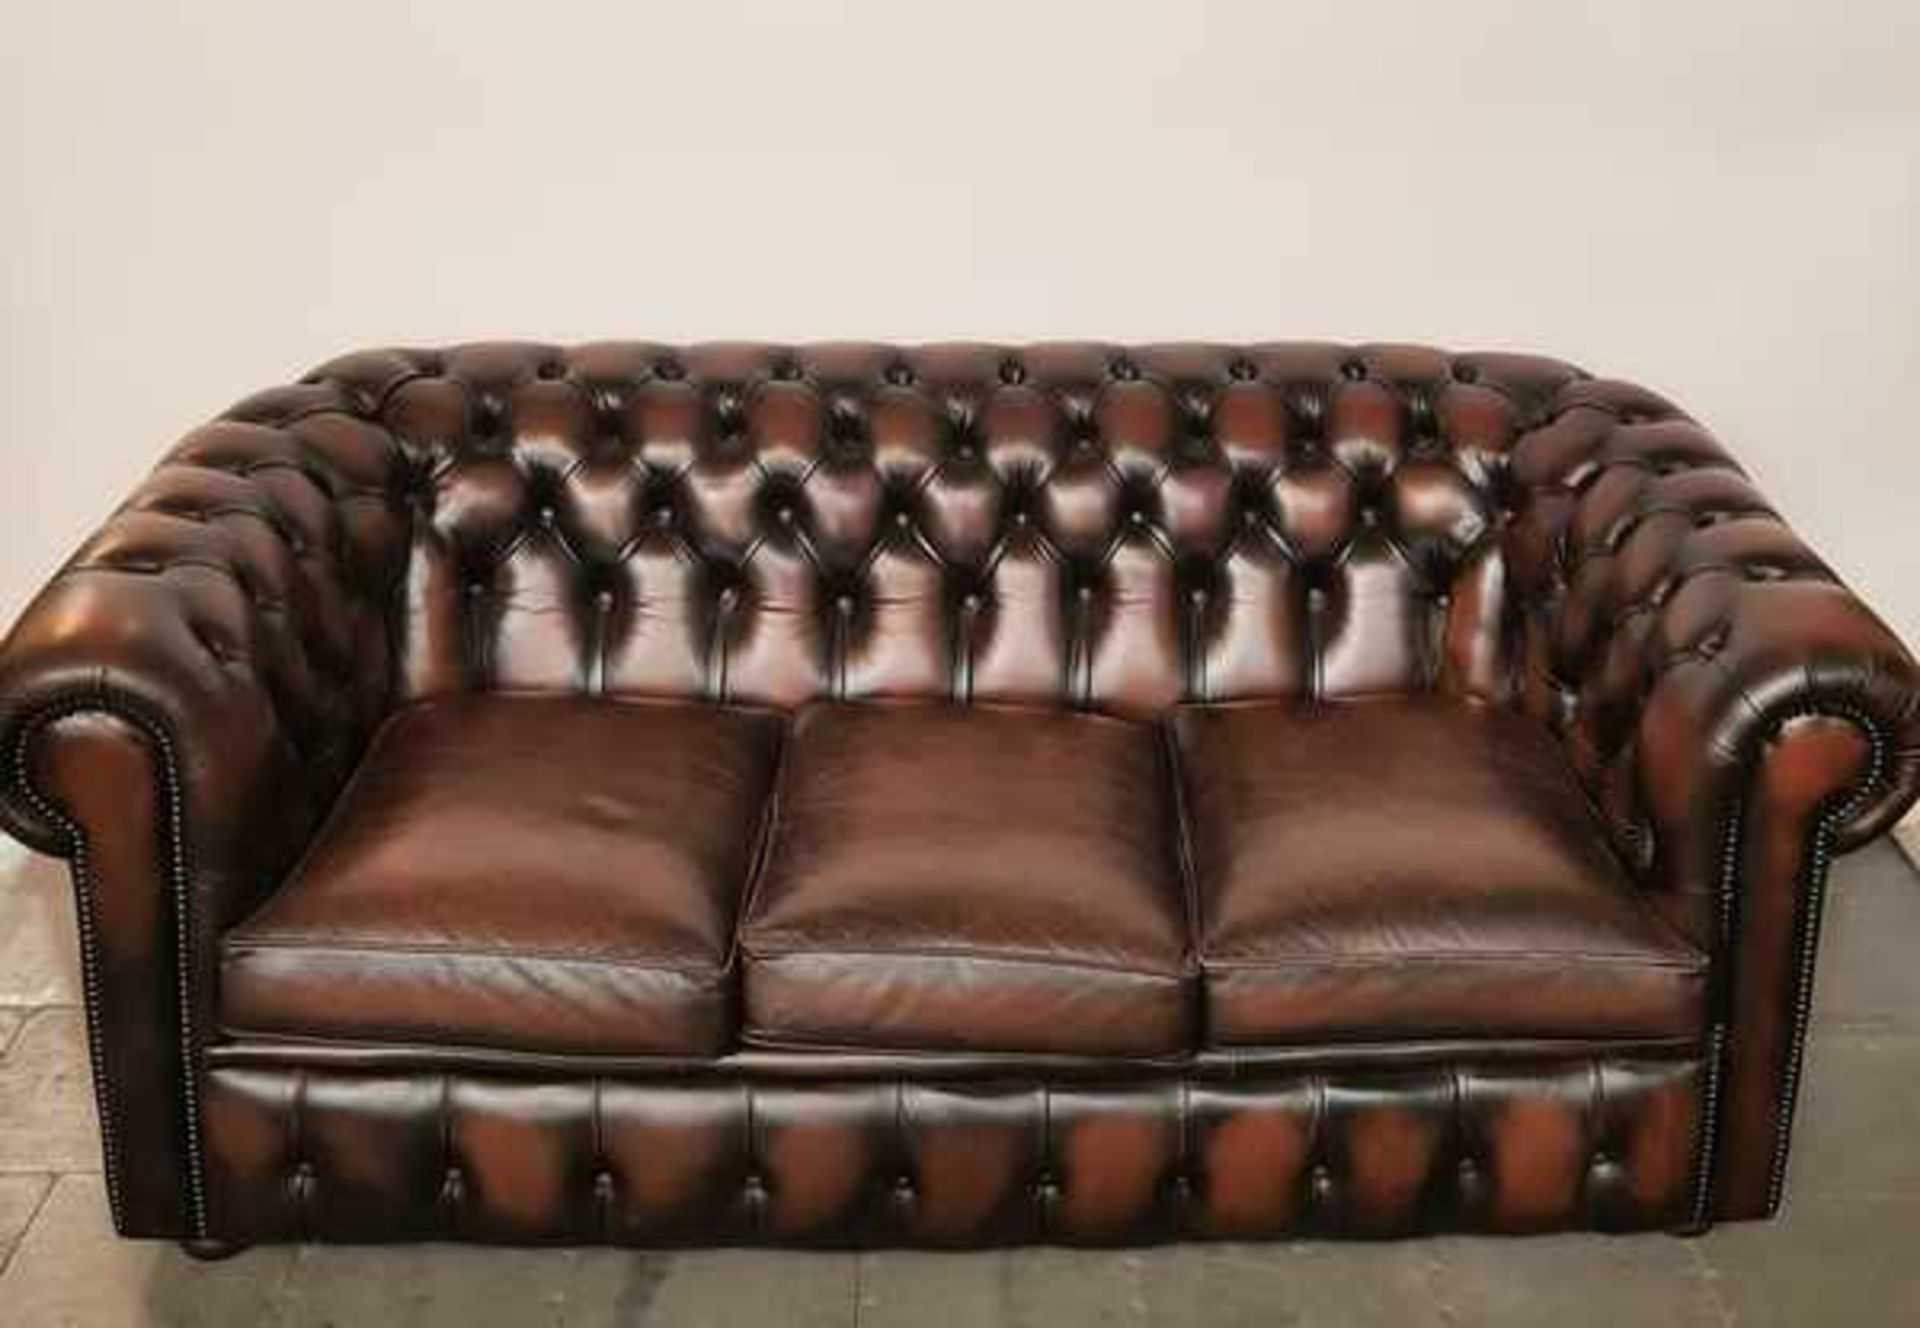 (Curiosa) Chesterfield stijl 3-zits bank - Image 2 of 3